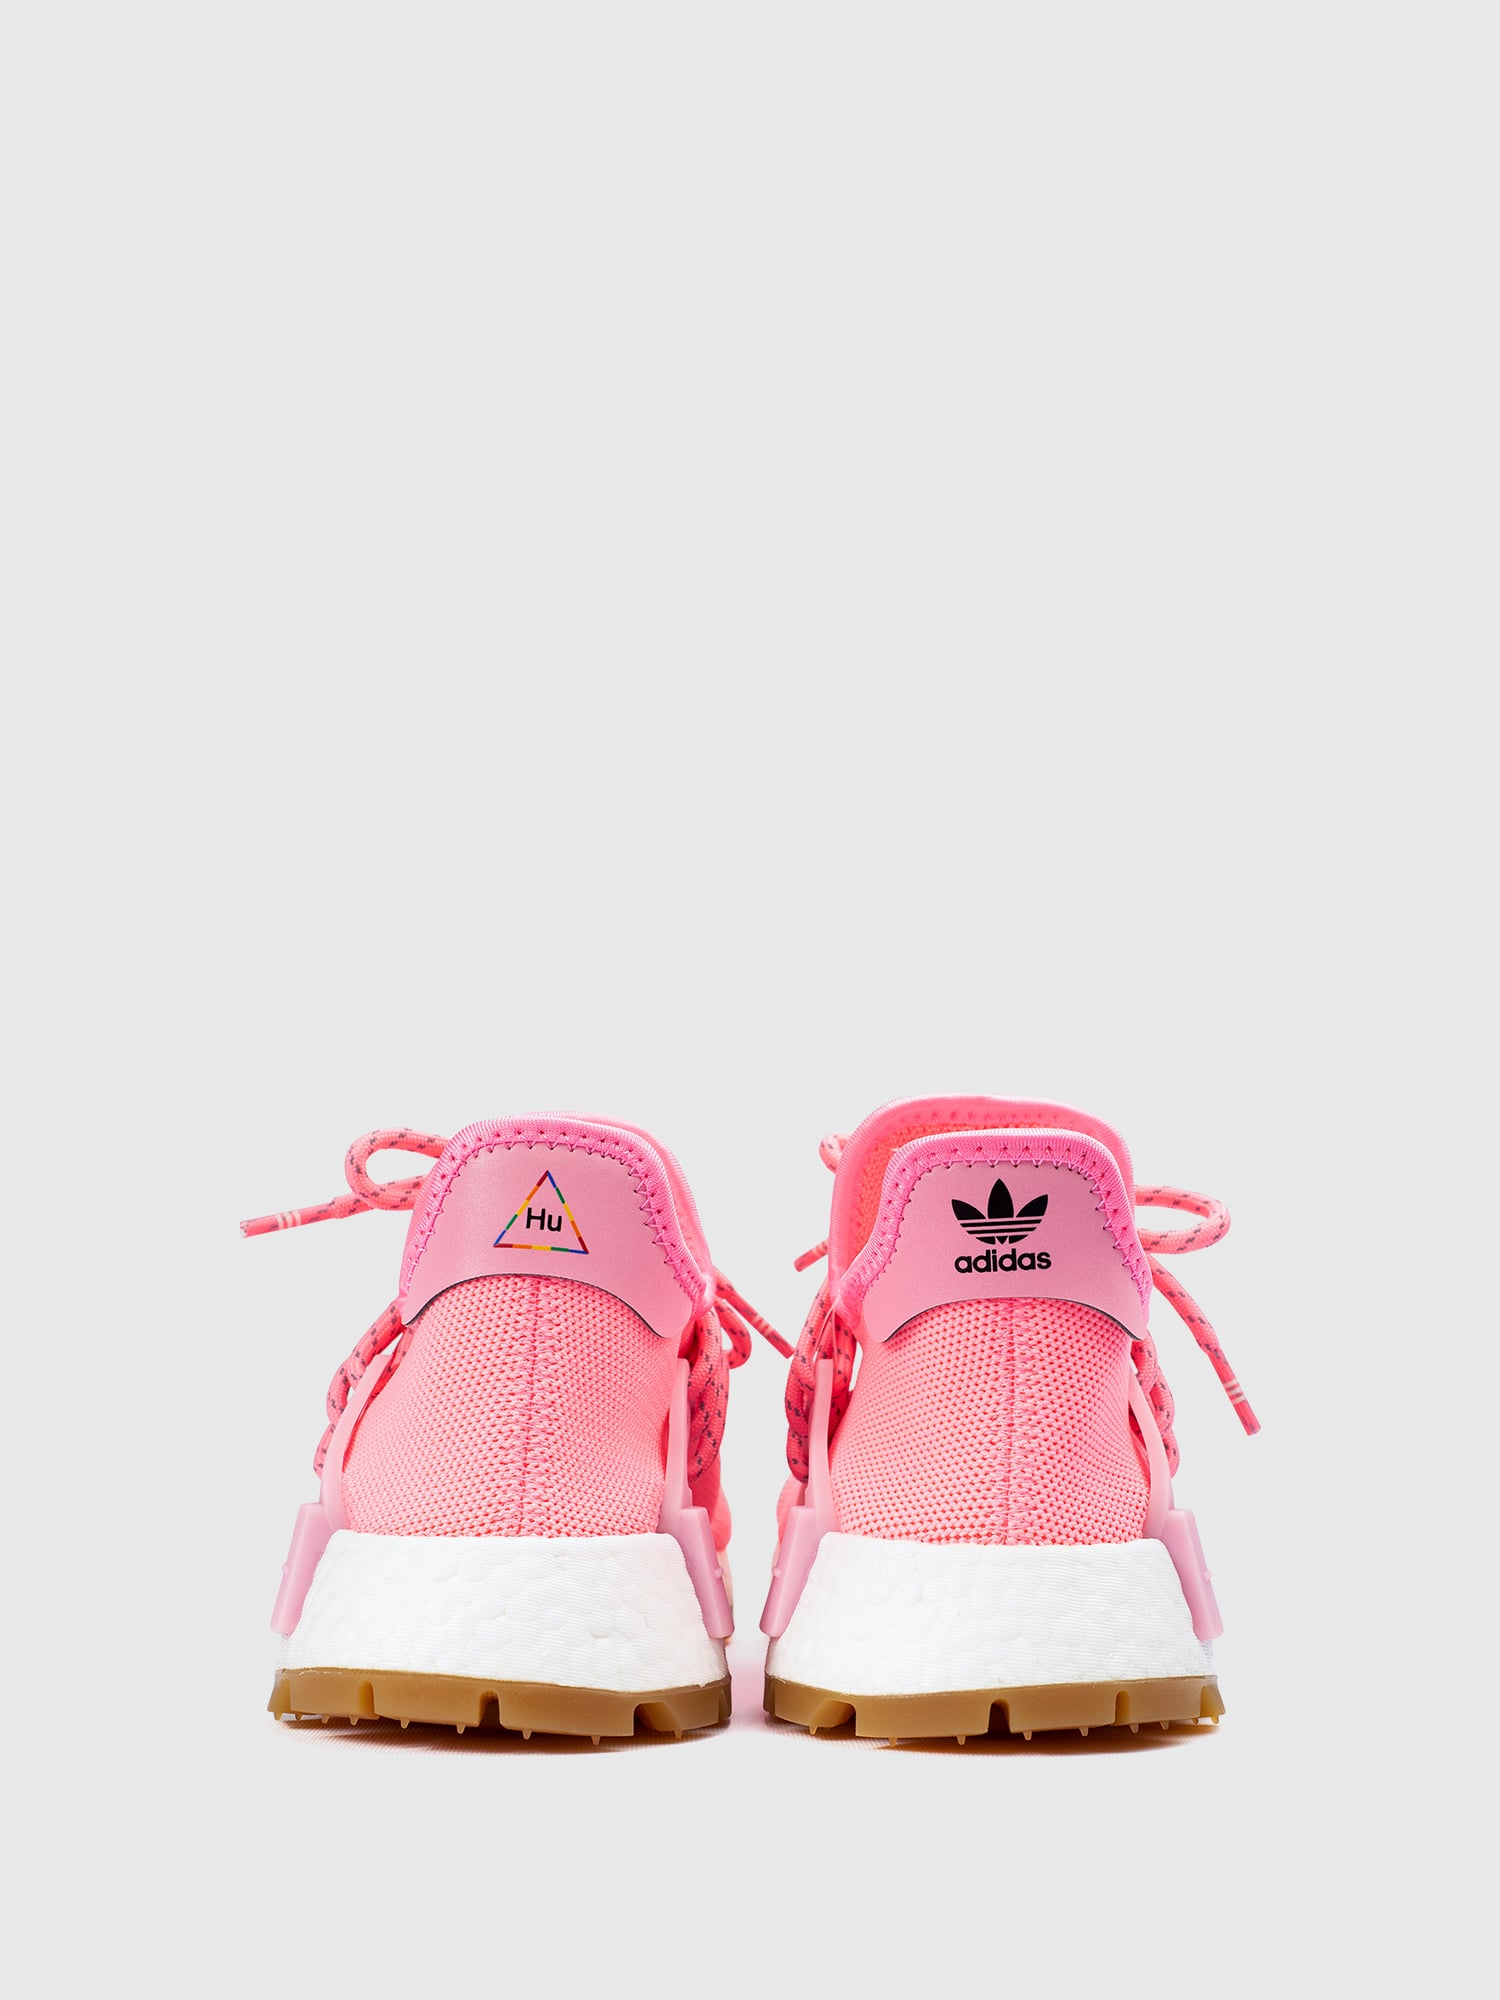 Adidas NMD Hu Trail Pharrell Now Is Her Time Light Pink